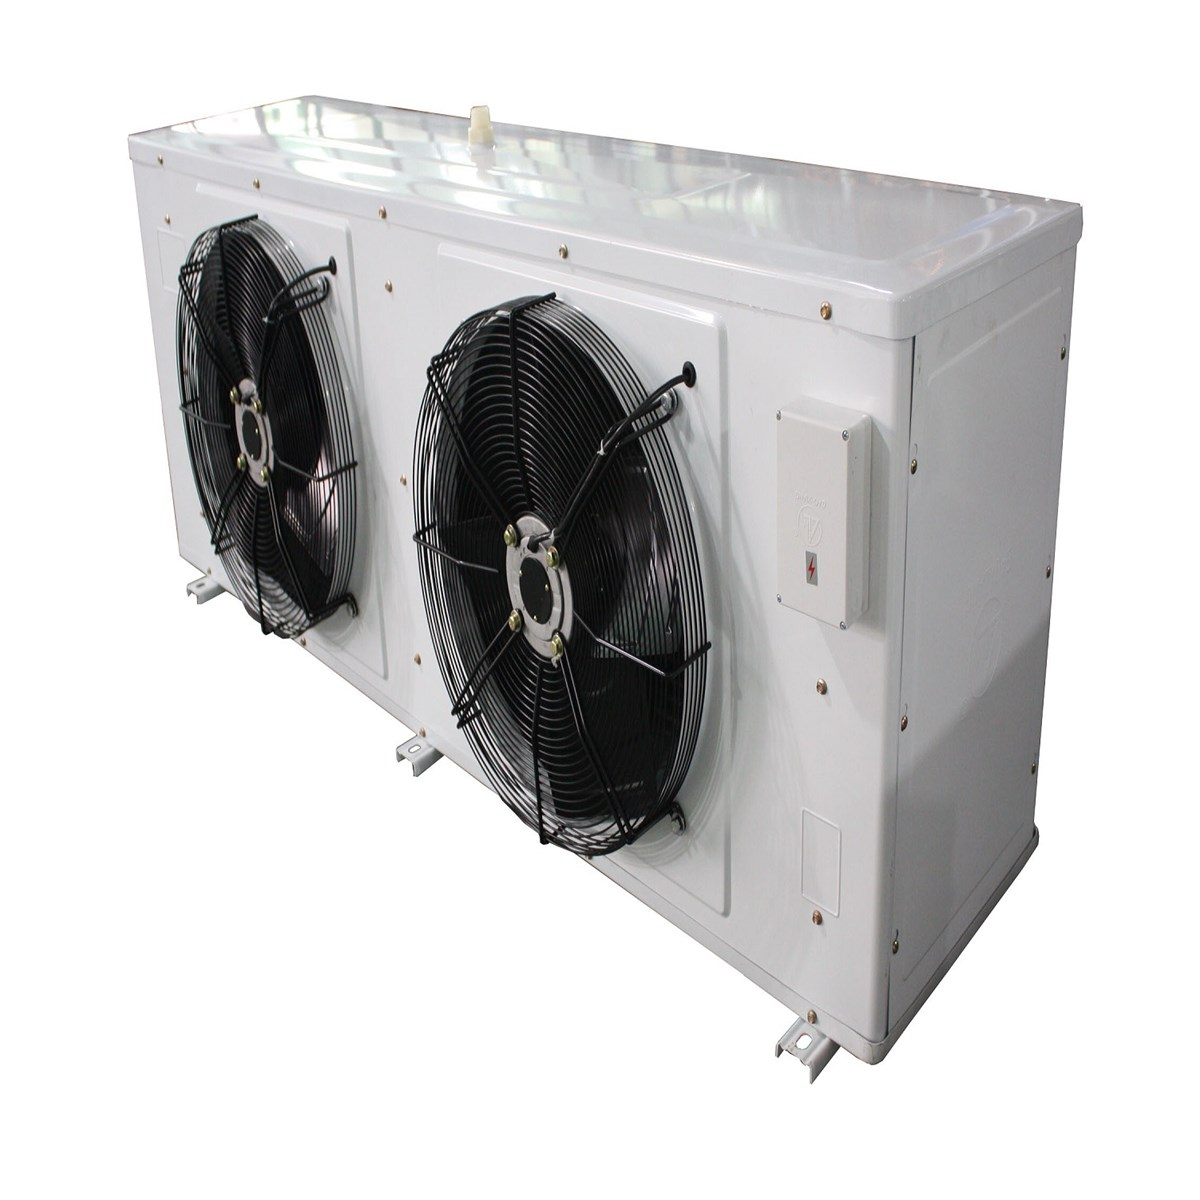 Medium/Low/High Temperature Cold Room/Cold Storage Evaporative Air Cooler  for Exporting In Largely Quantity